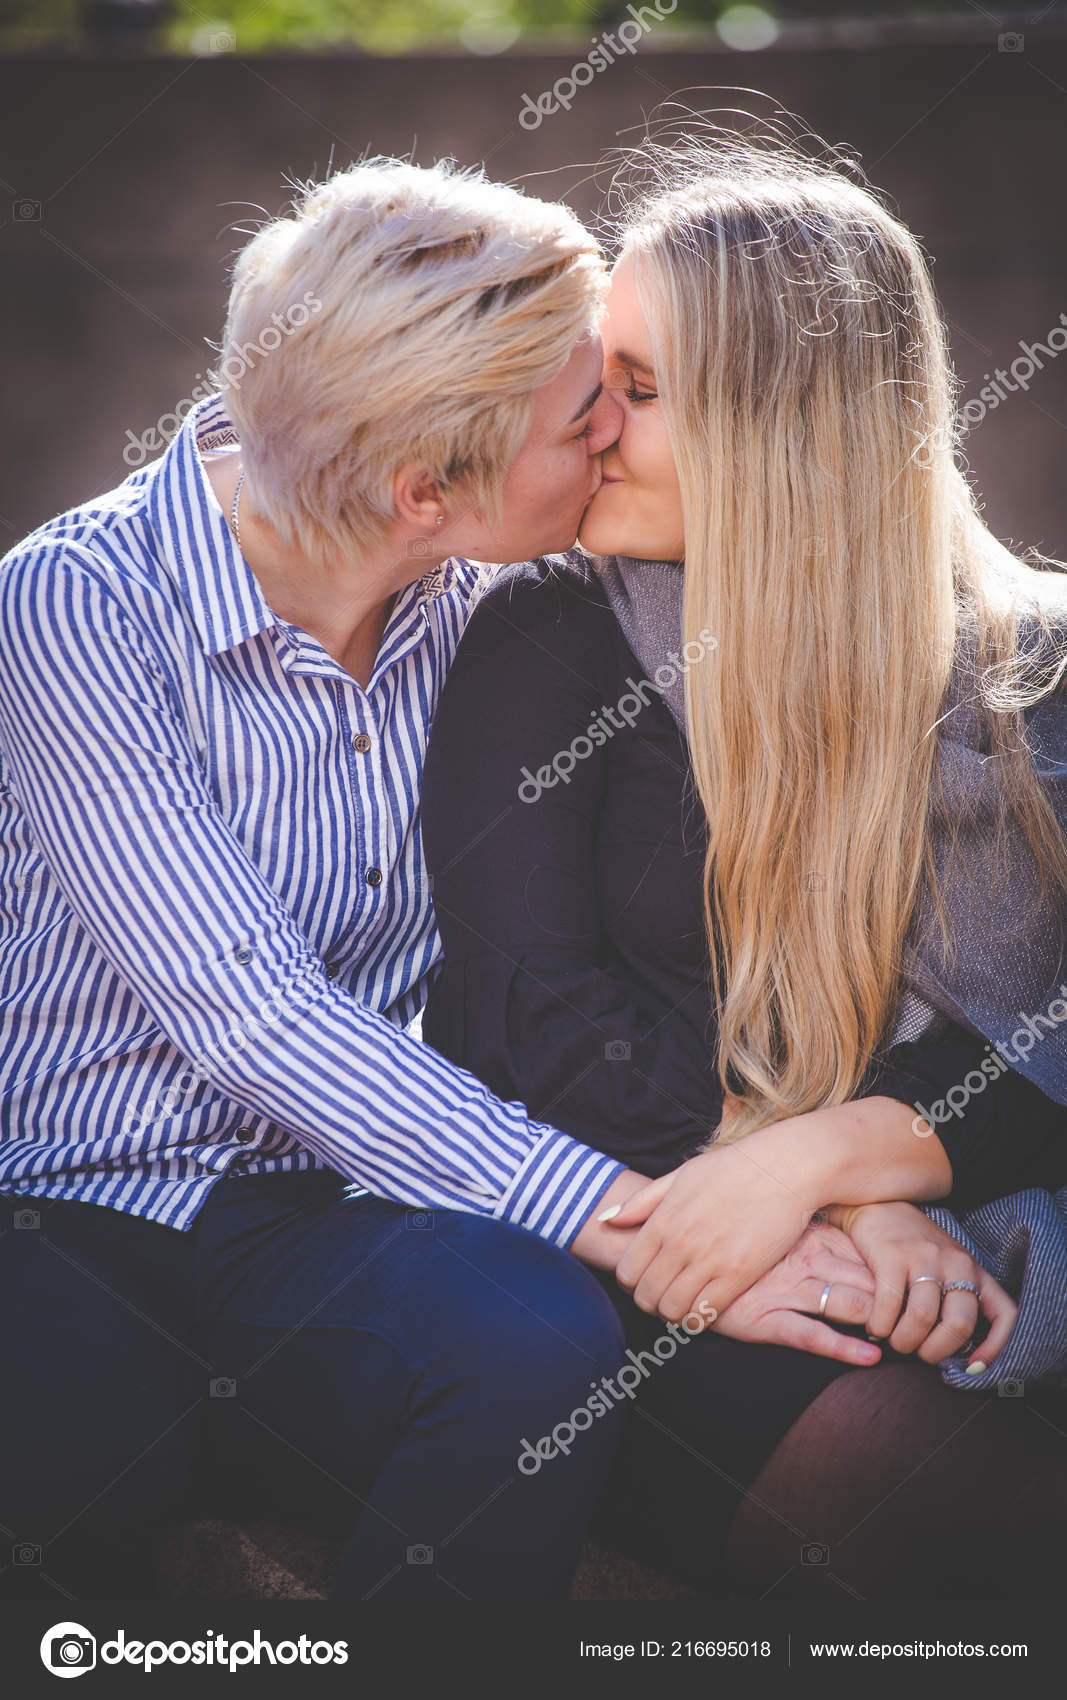 Dating sites for over 50 in cape town. Dating sites for over 50 in cape town.